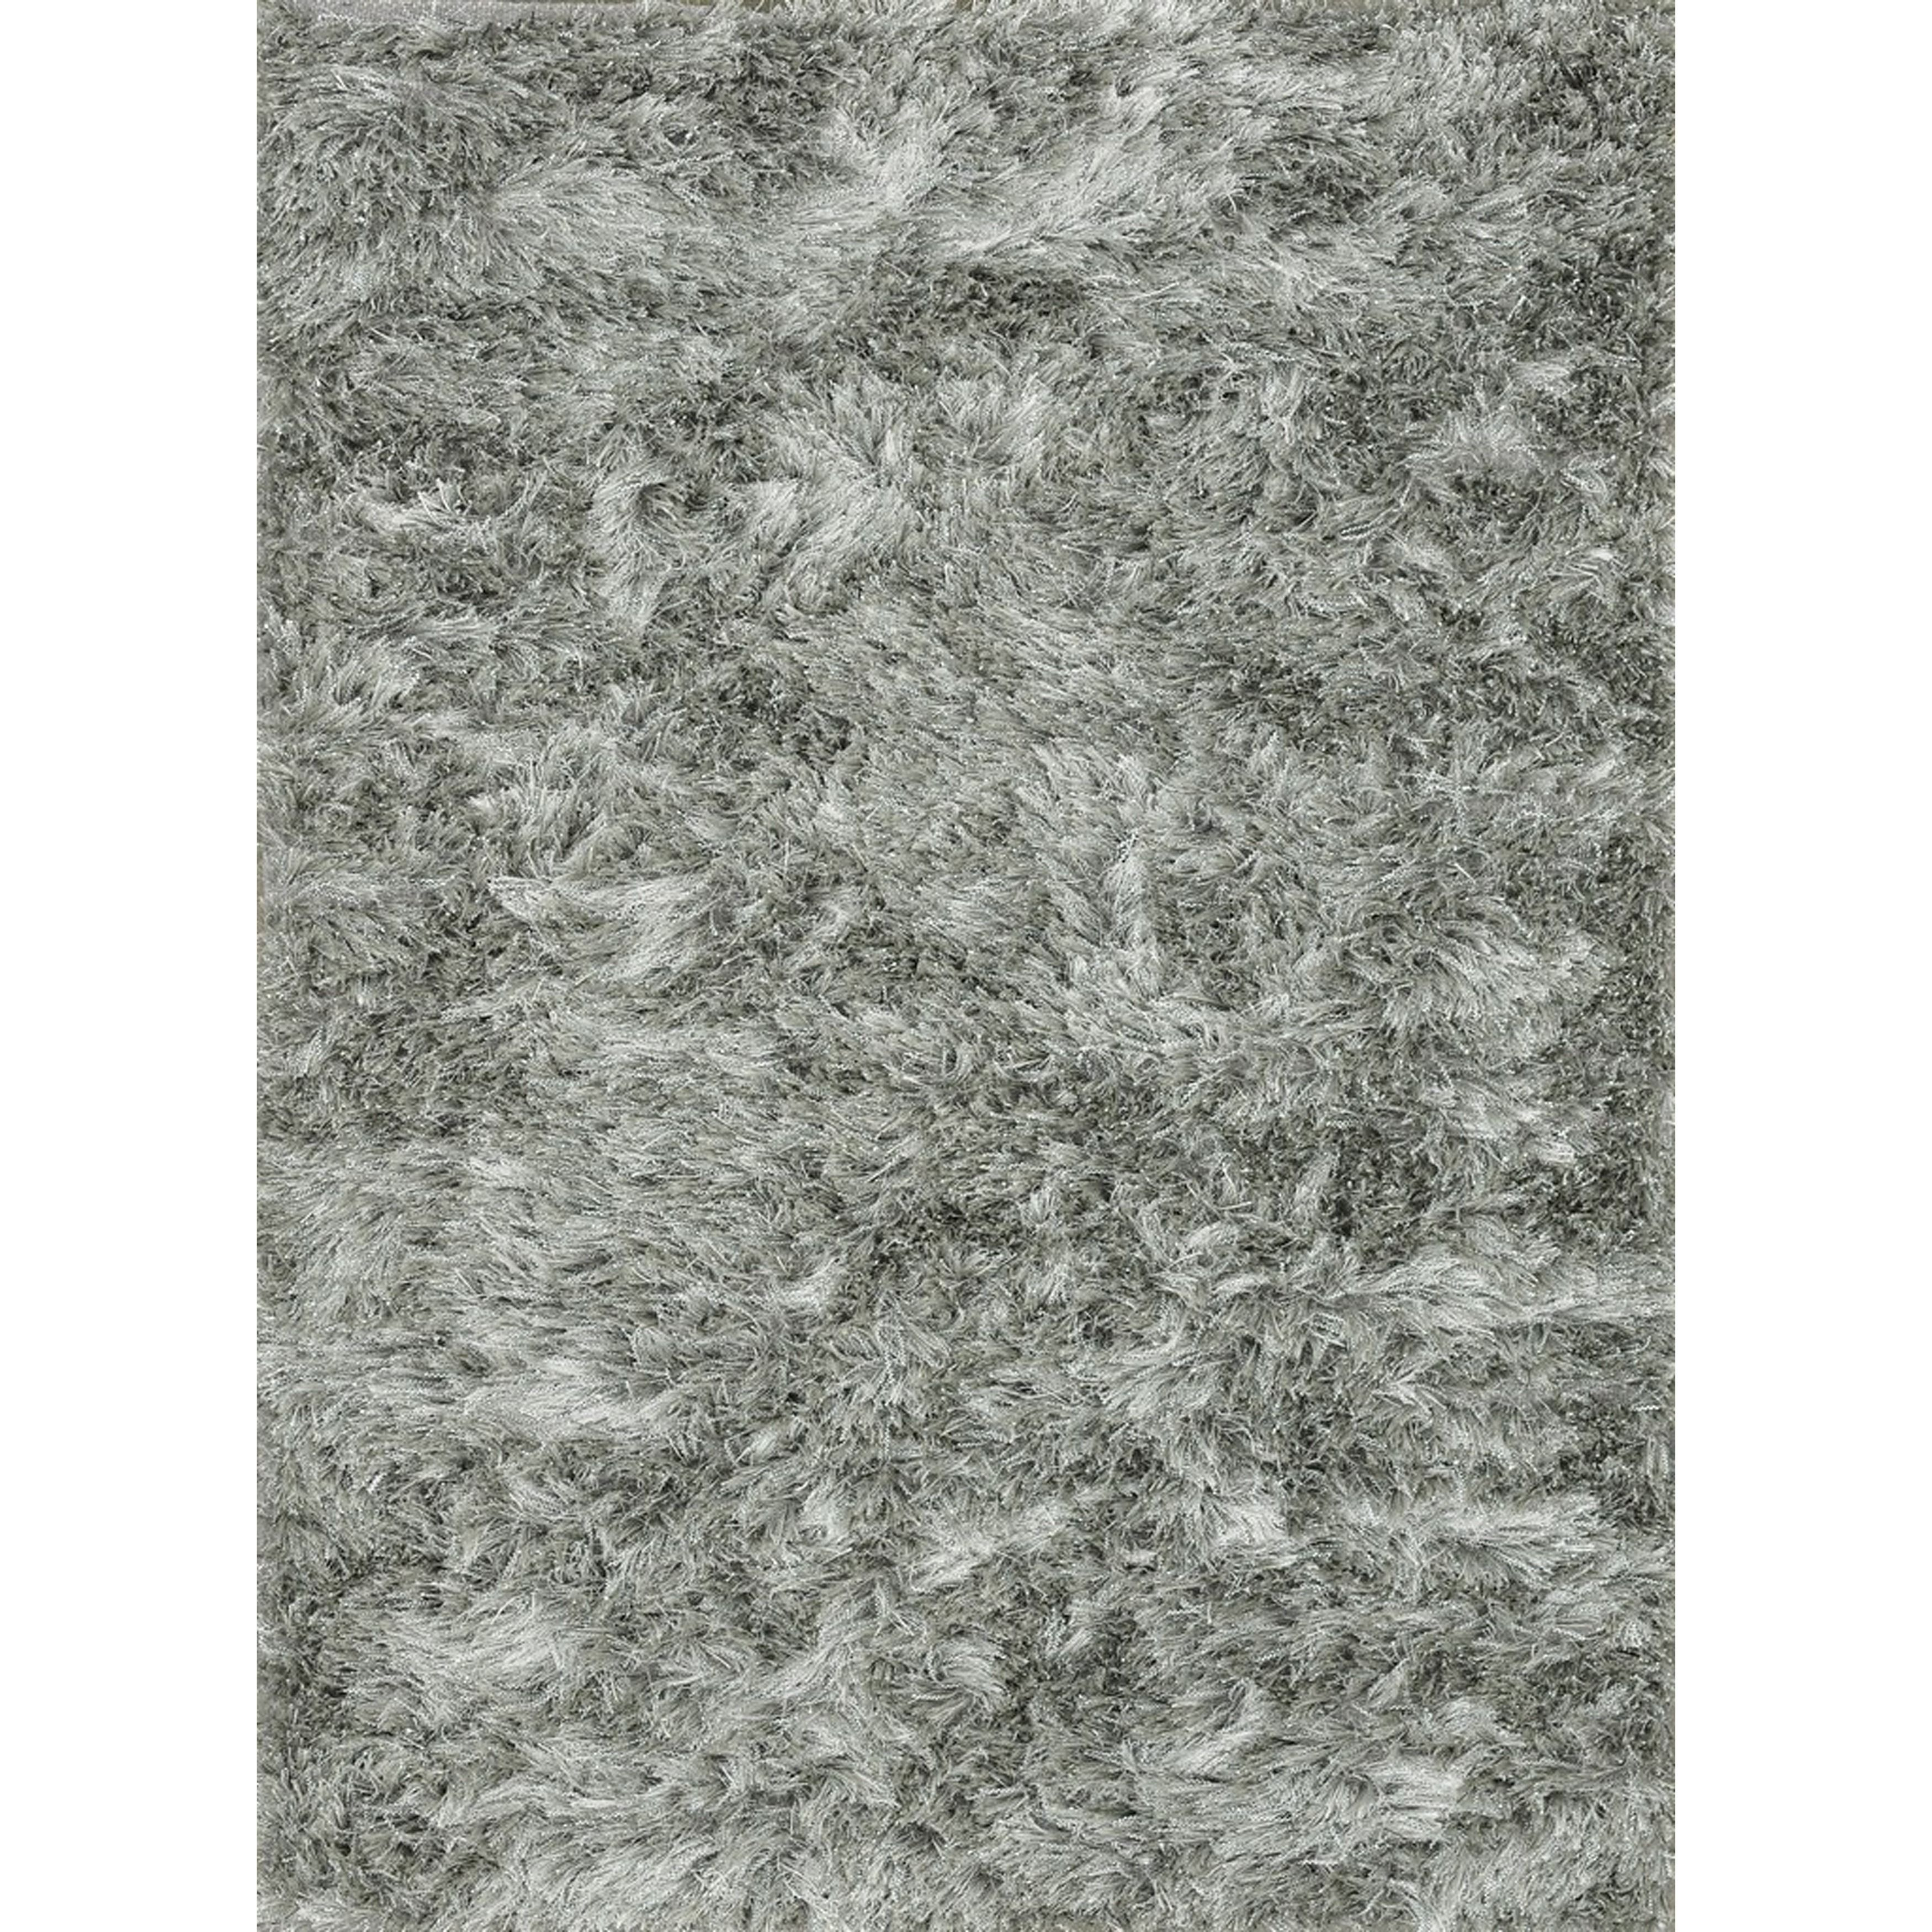 Surya Masala Market Mmt 2320 Rugs Rugs Direct Traditional Area Rugs Area Rugs Rugs